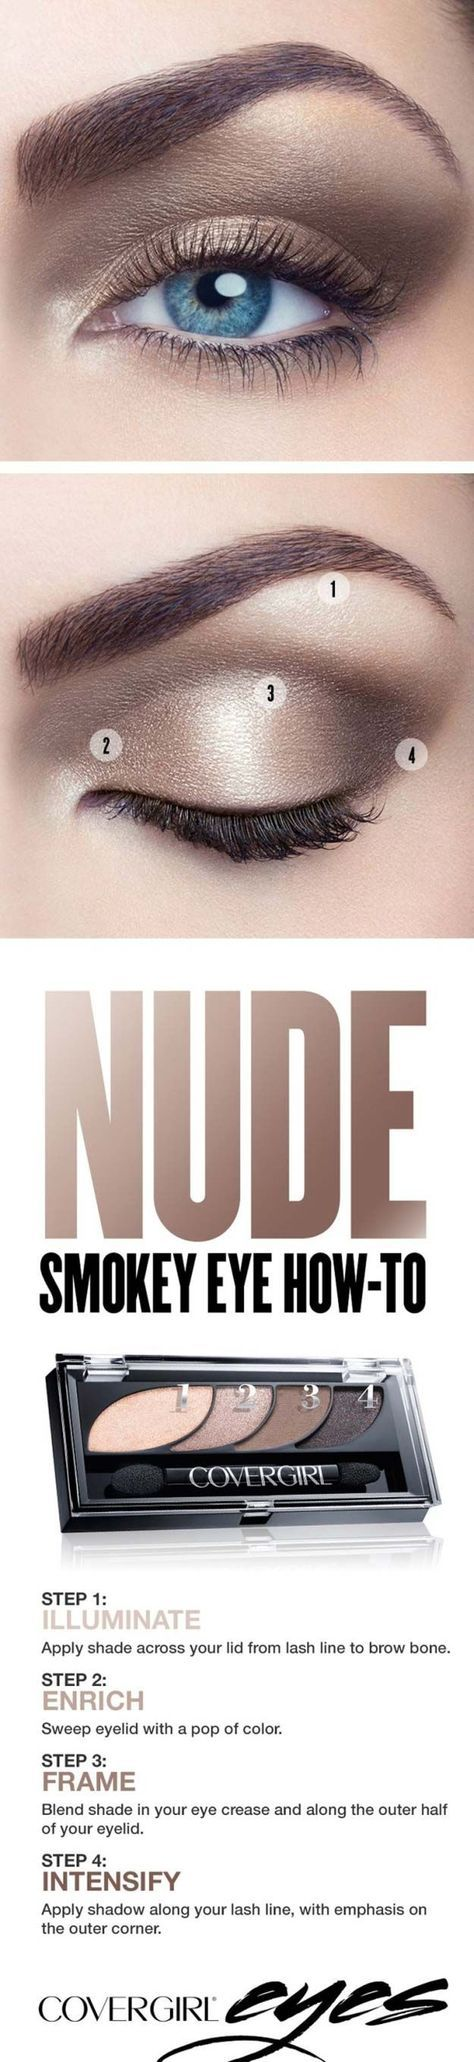 Step by Step Smokey Eye Tutorials - Nude Smokey Eye - Step by Step Tutorials on How to Apply Different Eyeshadows for Smokey Eyes - Awesome Looks for Brown, Black, and Blue Eyes, Natural Looks, and Looks for All Types of Lashes - thegoddess.com/step-by-st